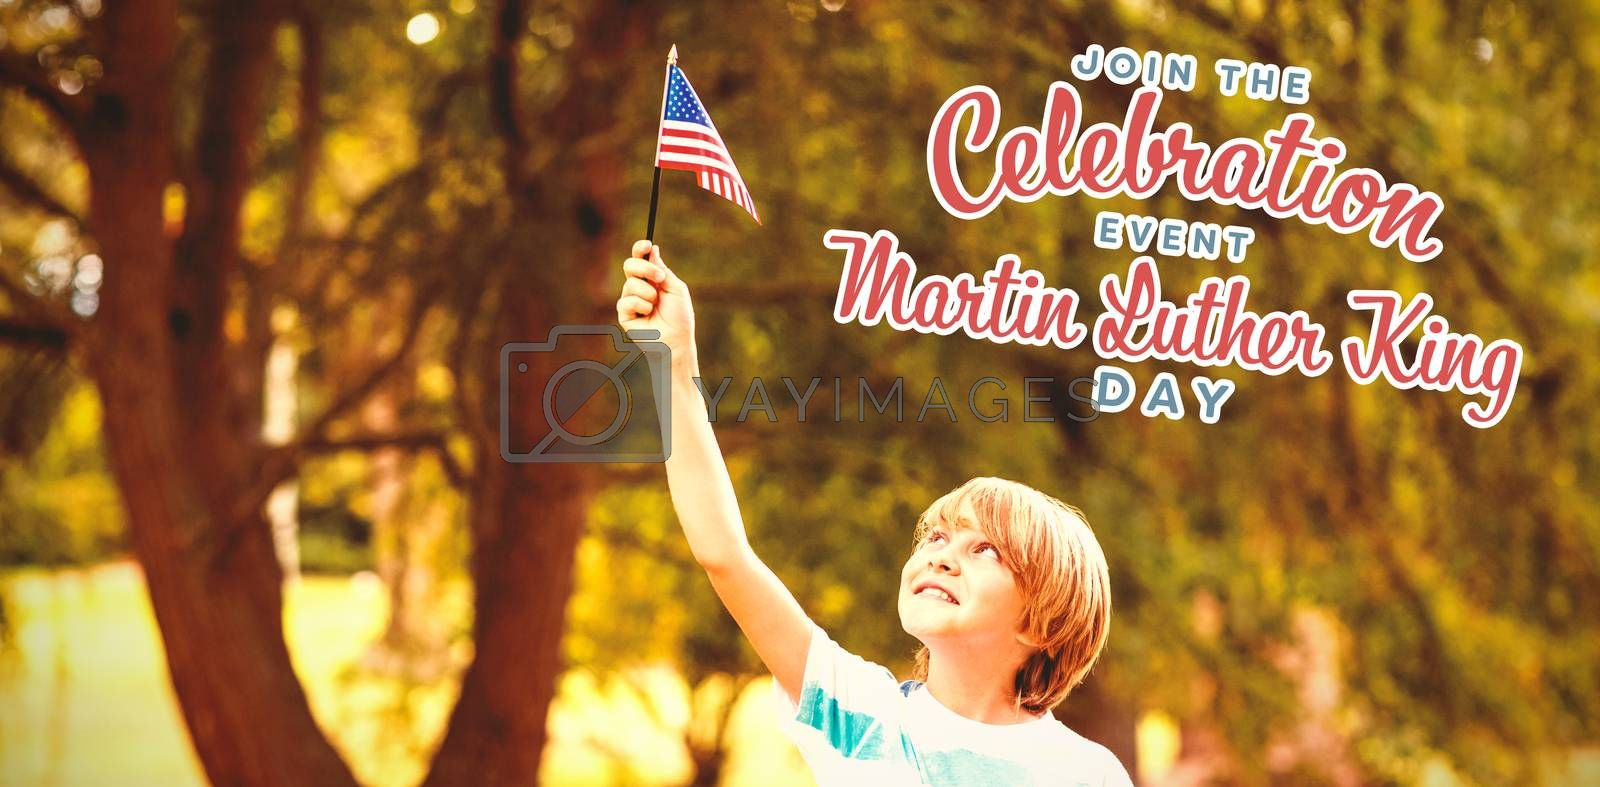 Boy with American flag against join the celebration event martin luther king day